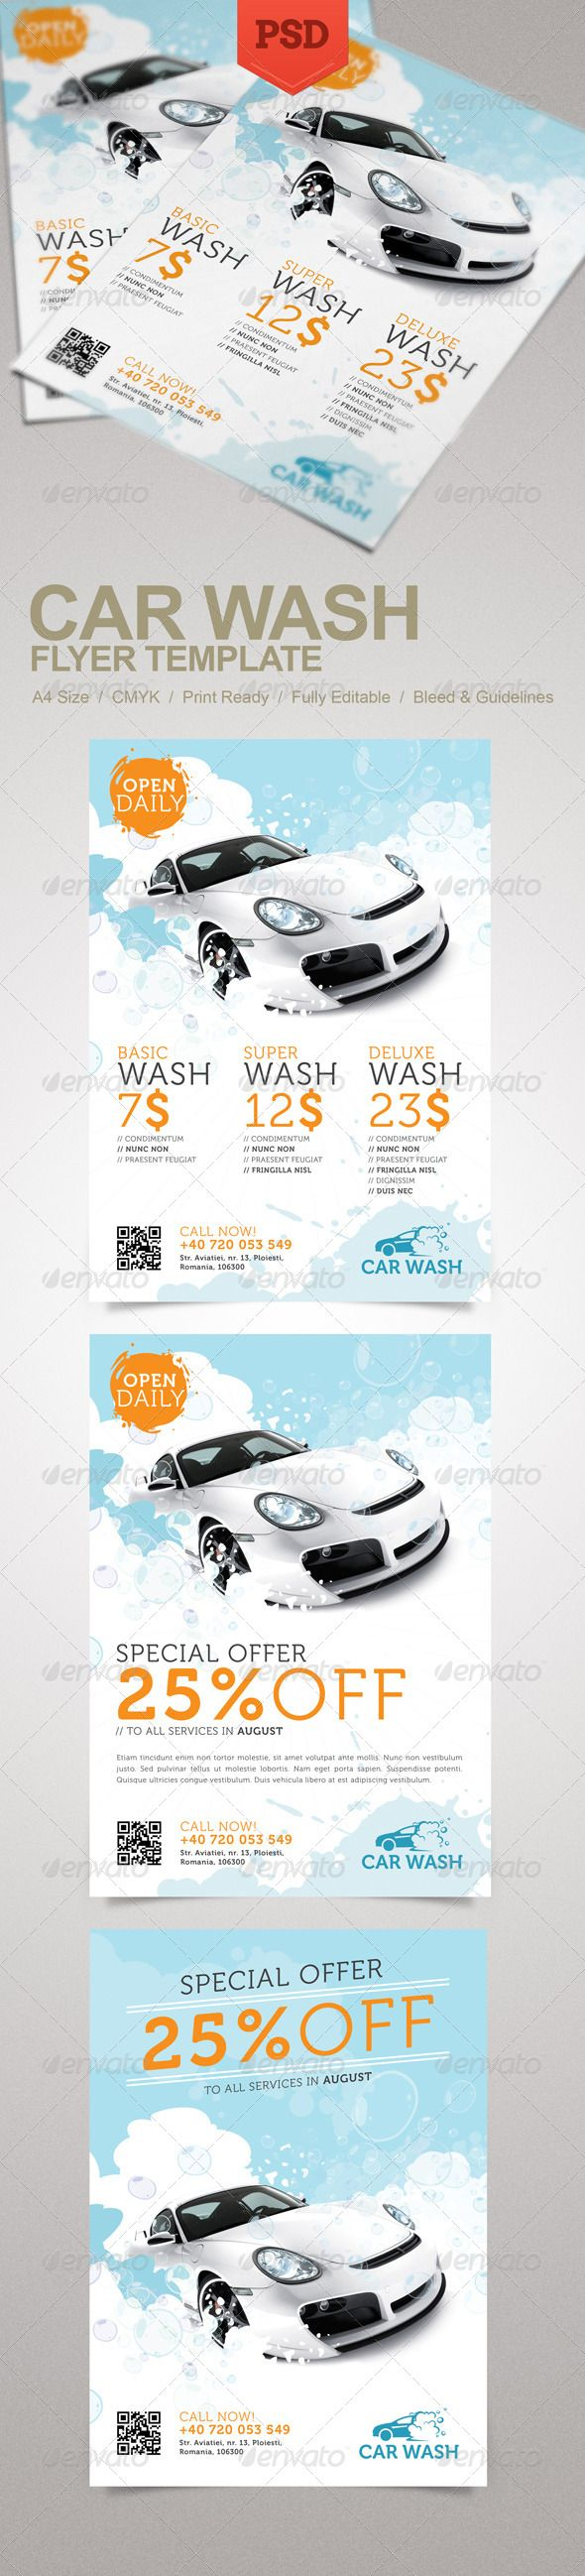 Mobile Car Wash Startup Costs